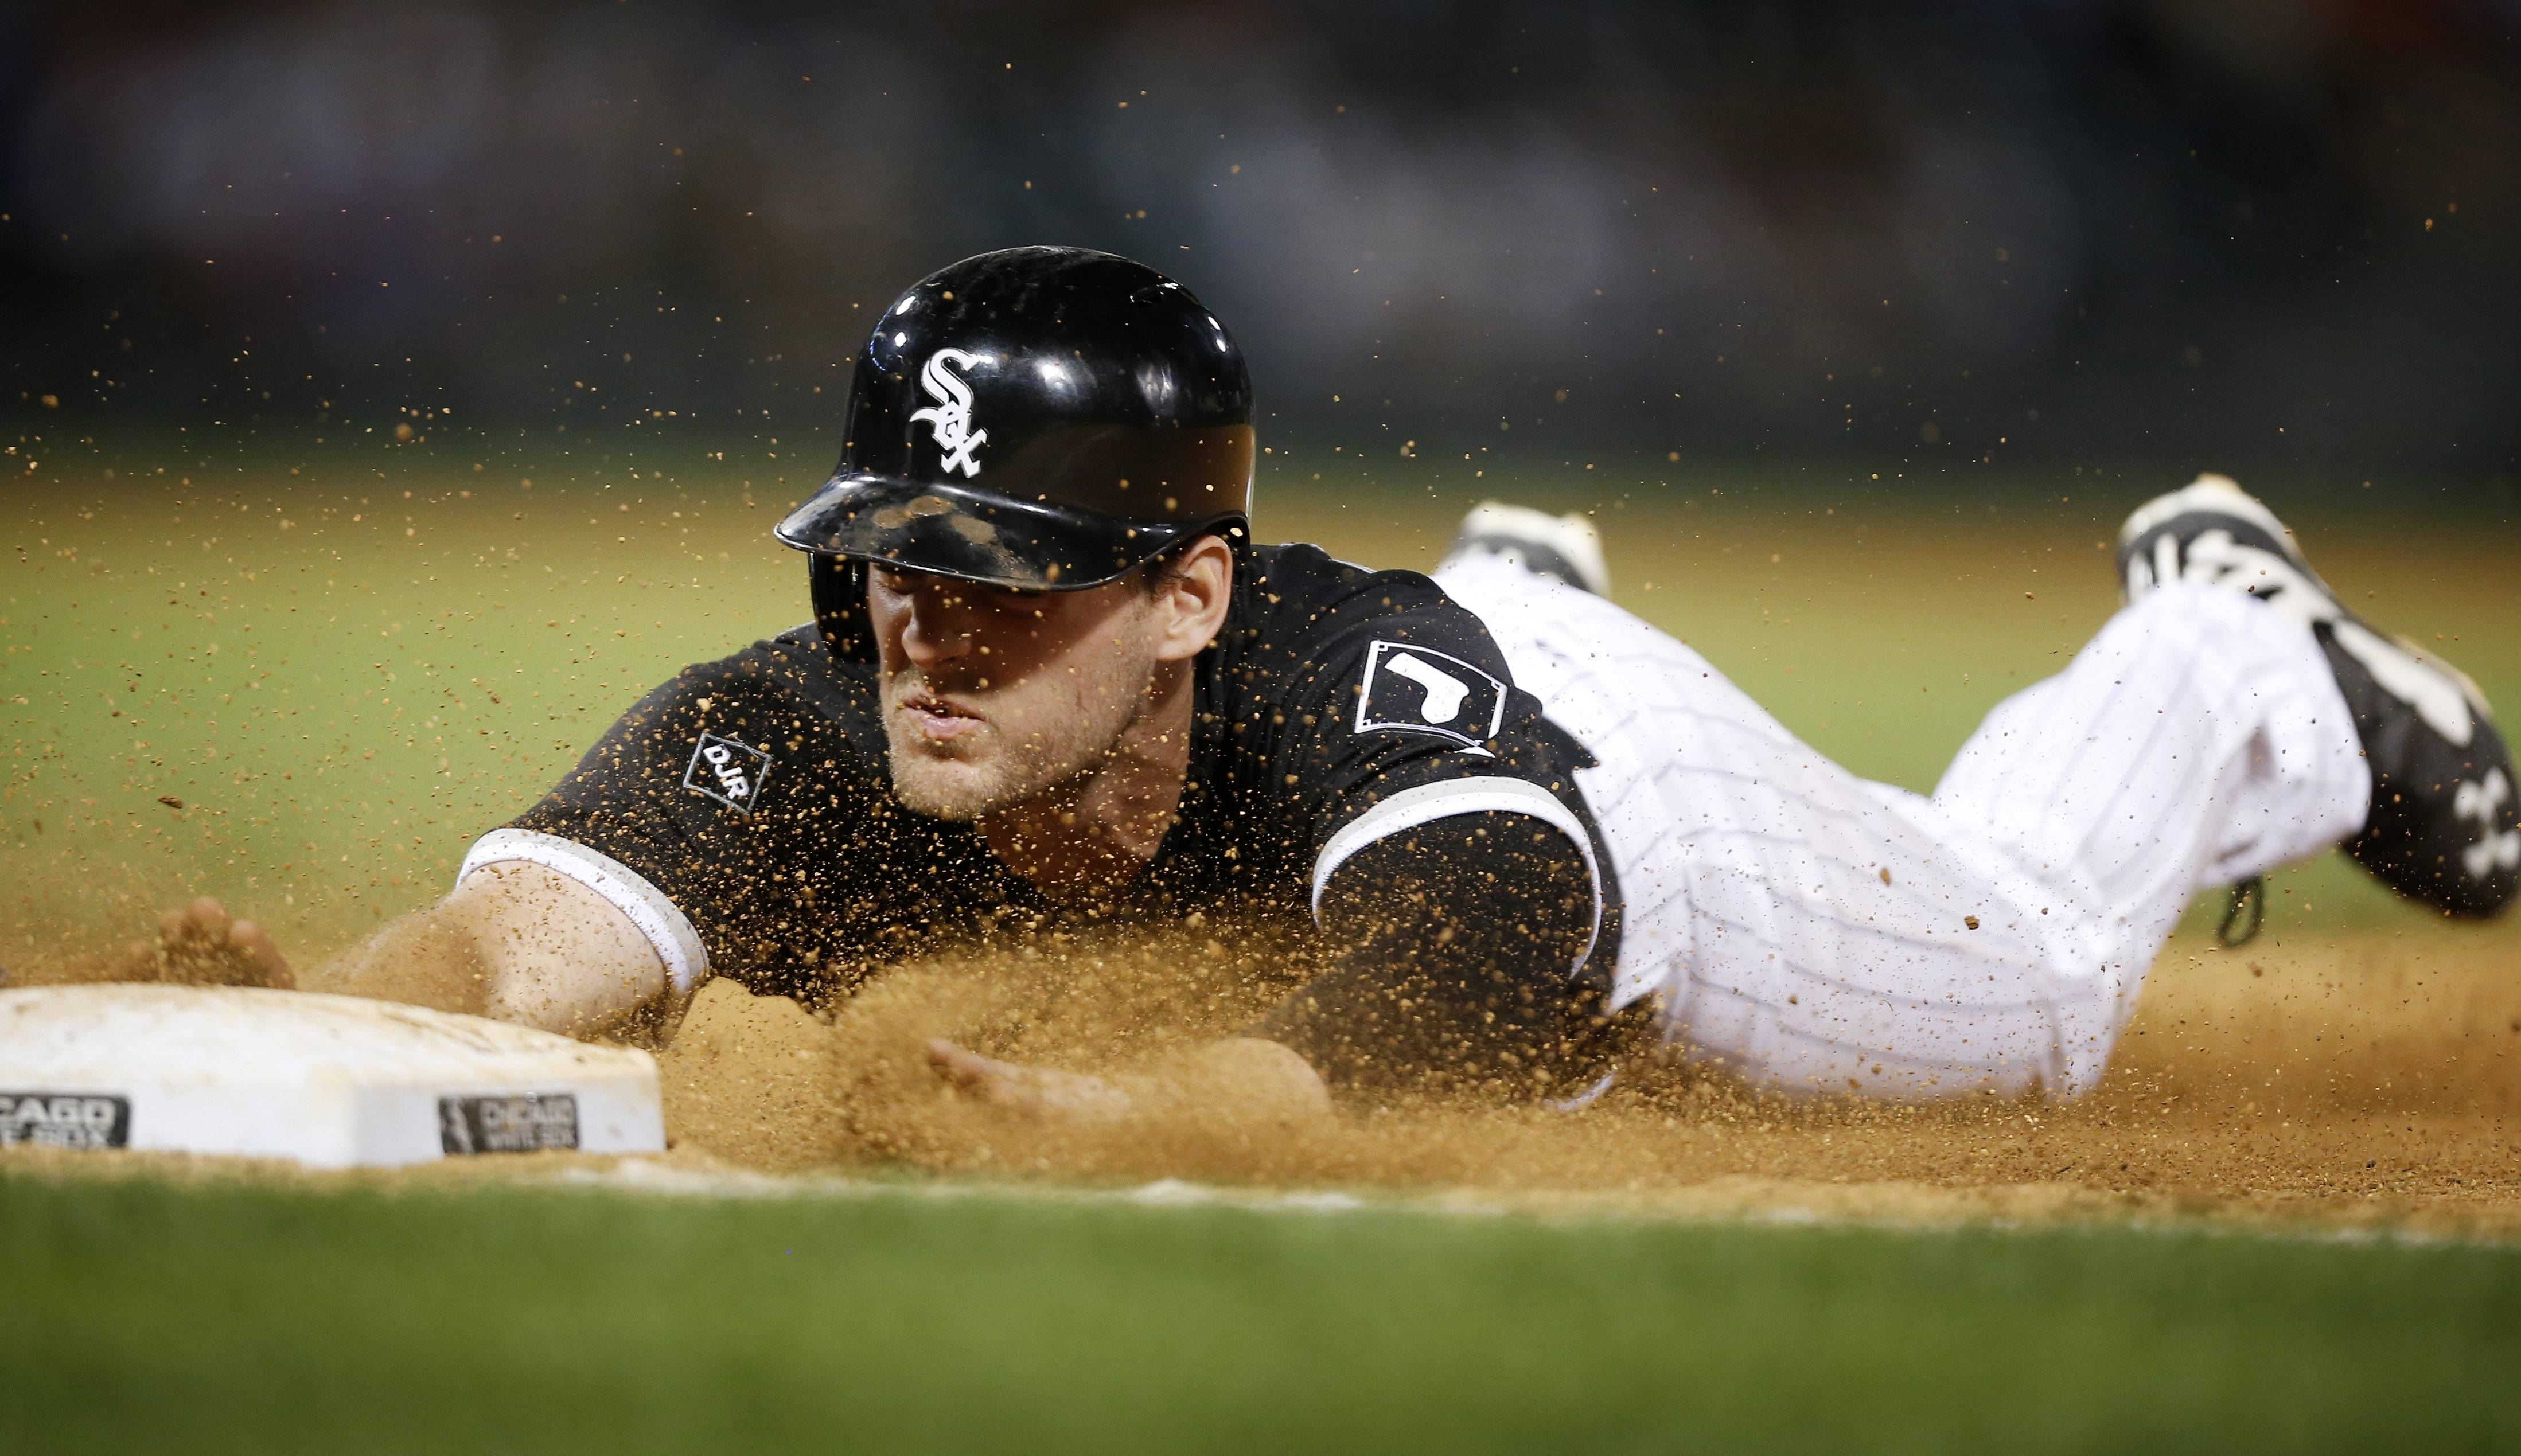 Chicago White Sox's Conor Gillaspie safely dives back to first after teammate Dayan Viciedo lined out against the Los Angeles Angels during the eighth inning of the second baseball game of a doubleheader on Tuesday, July 1, 2014, in Chicago.